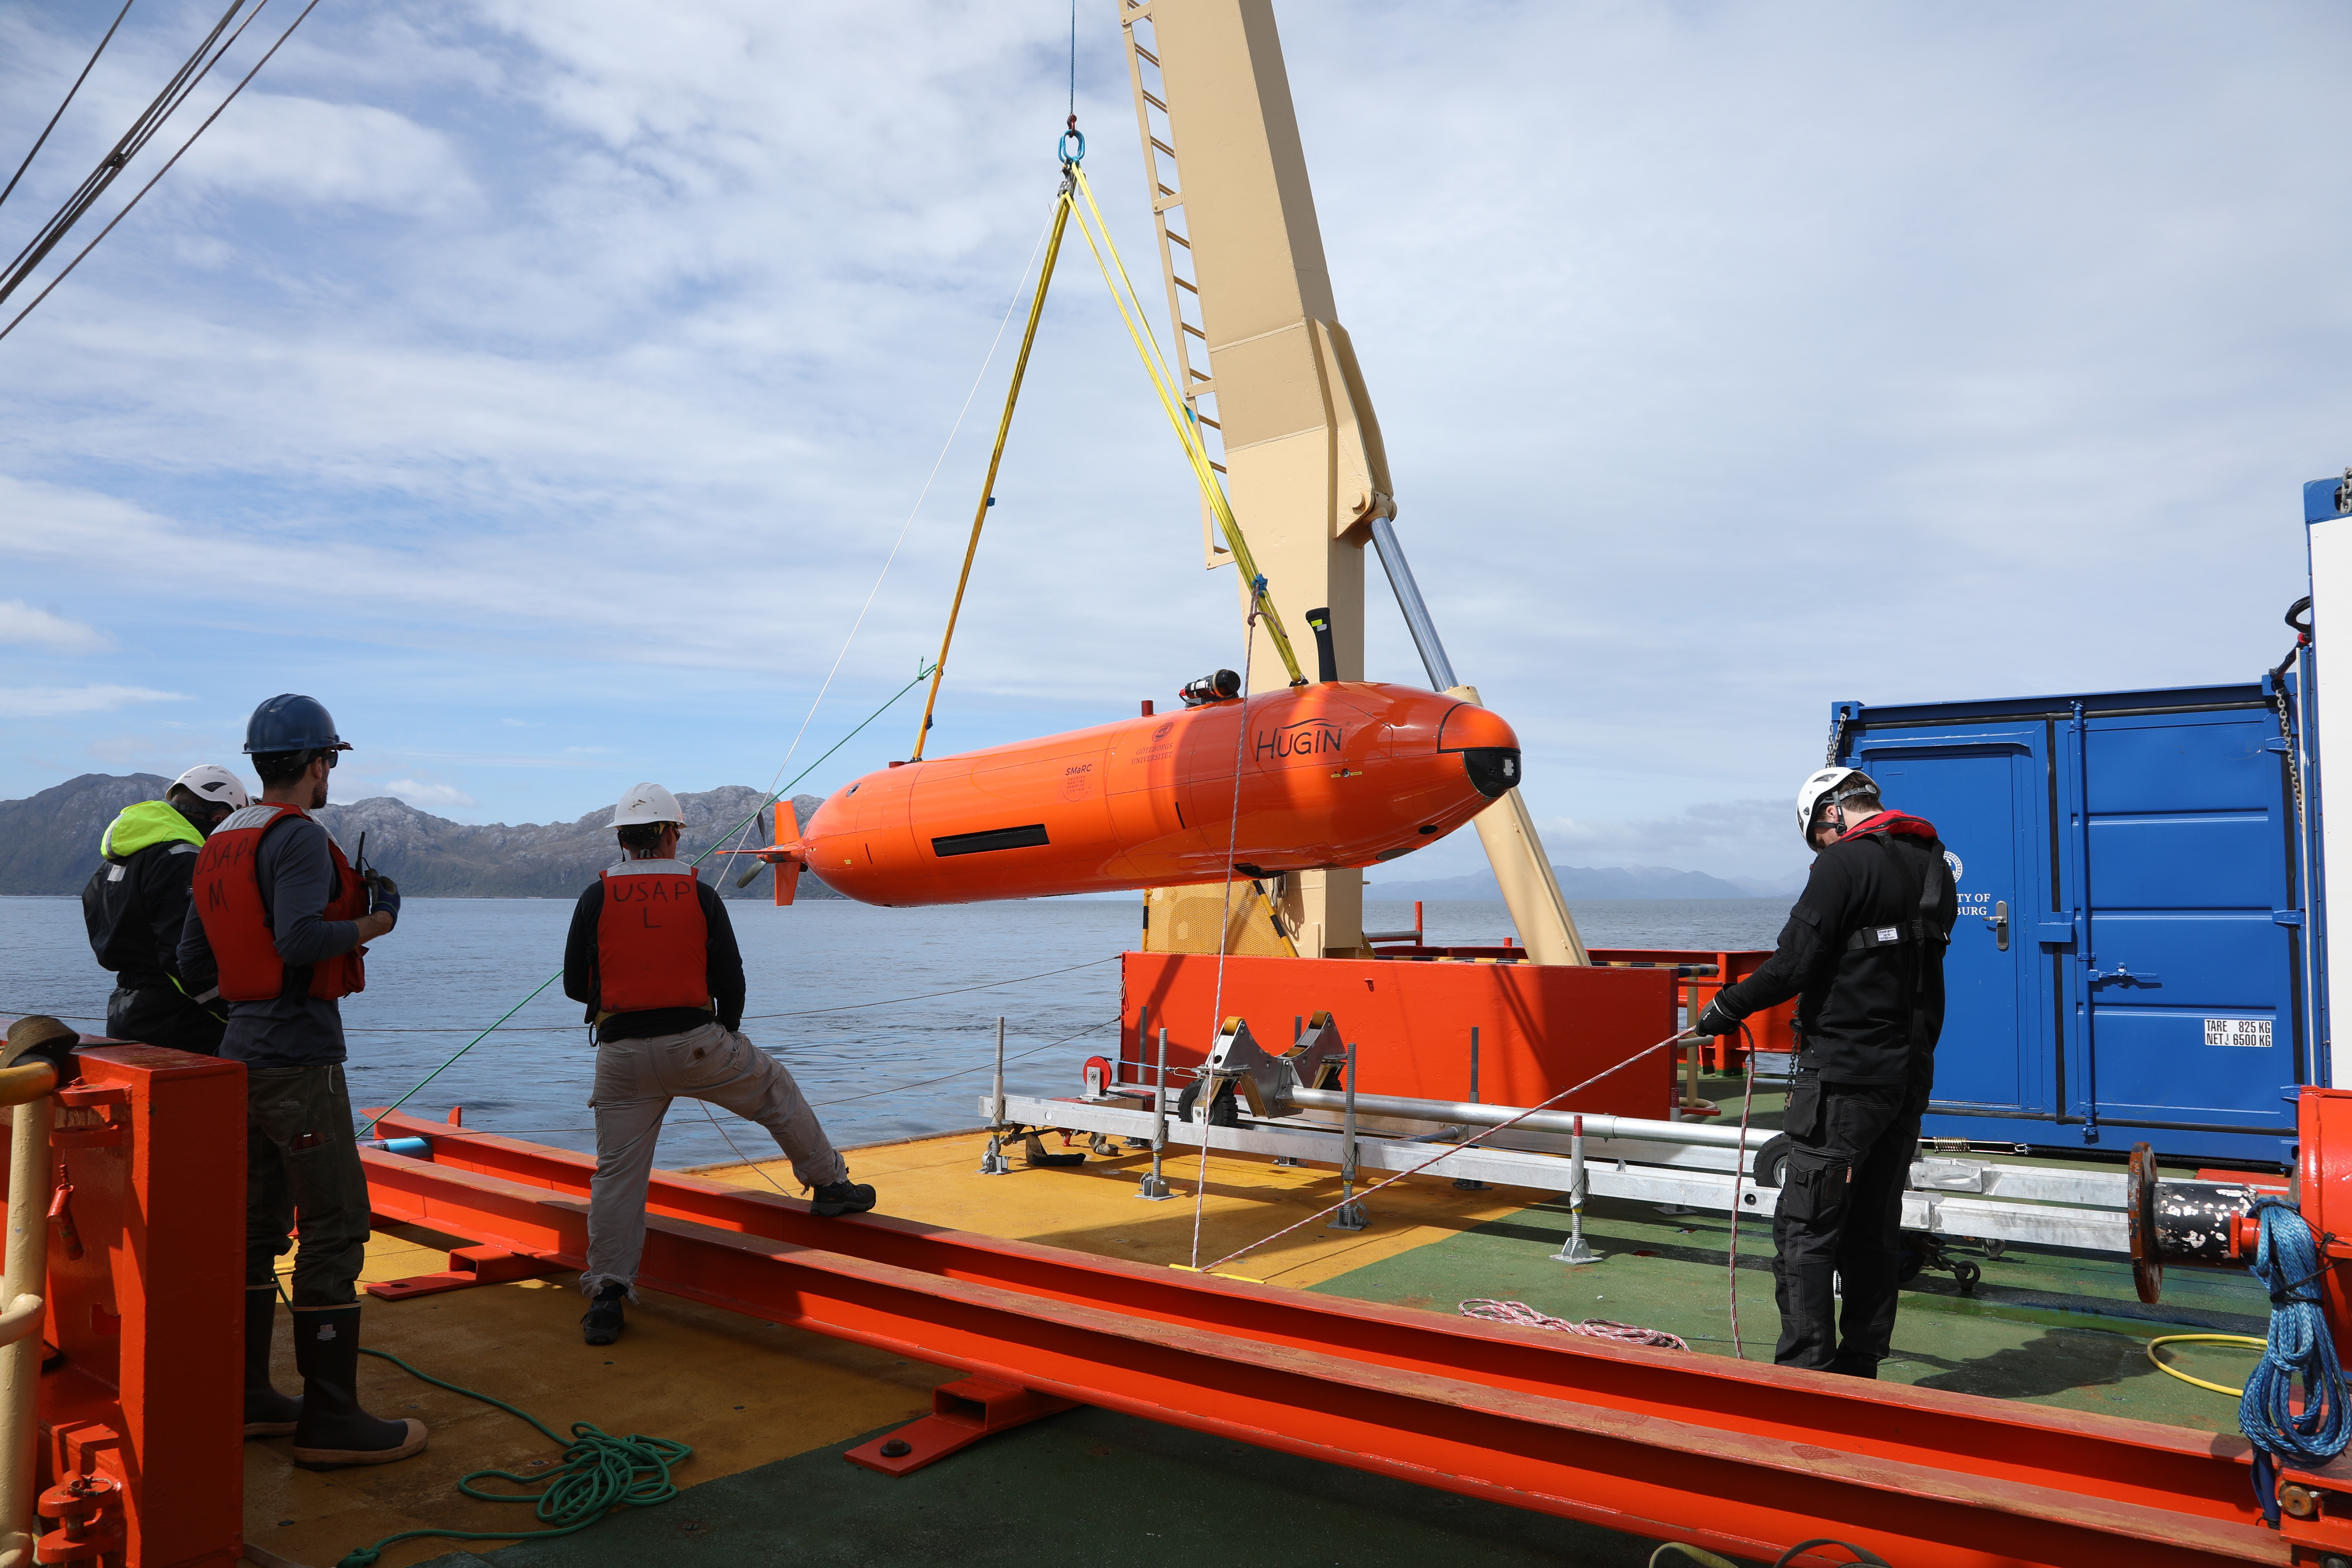 Crew members guide the Hugin as the A-frame lifts it off of the deck and into the water. (credit: Linda Welzenbach).